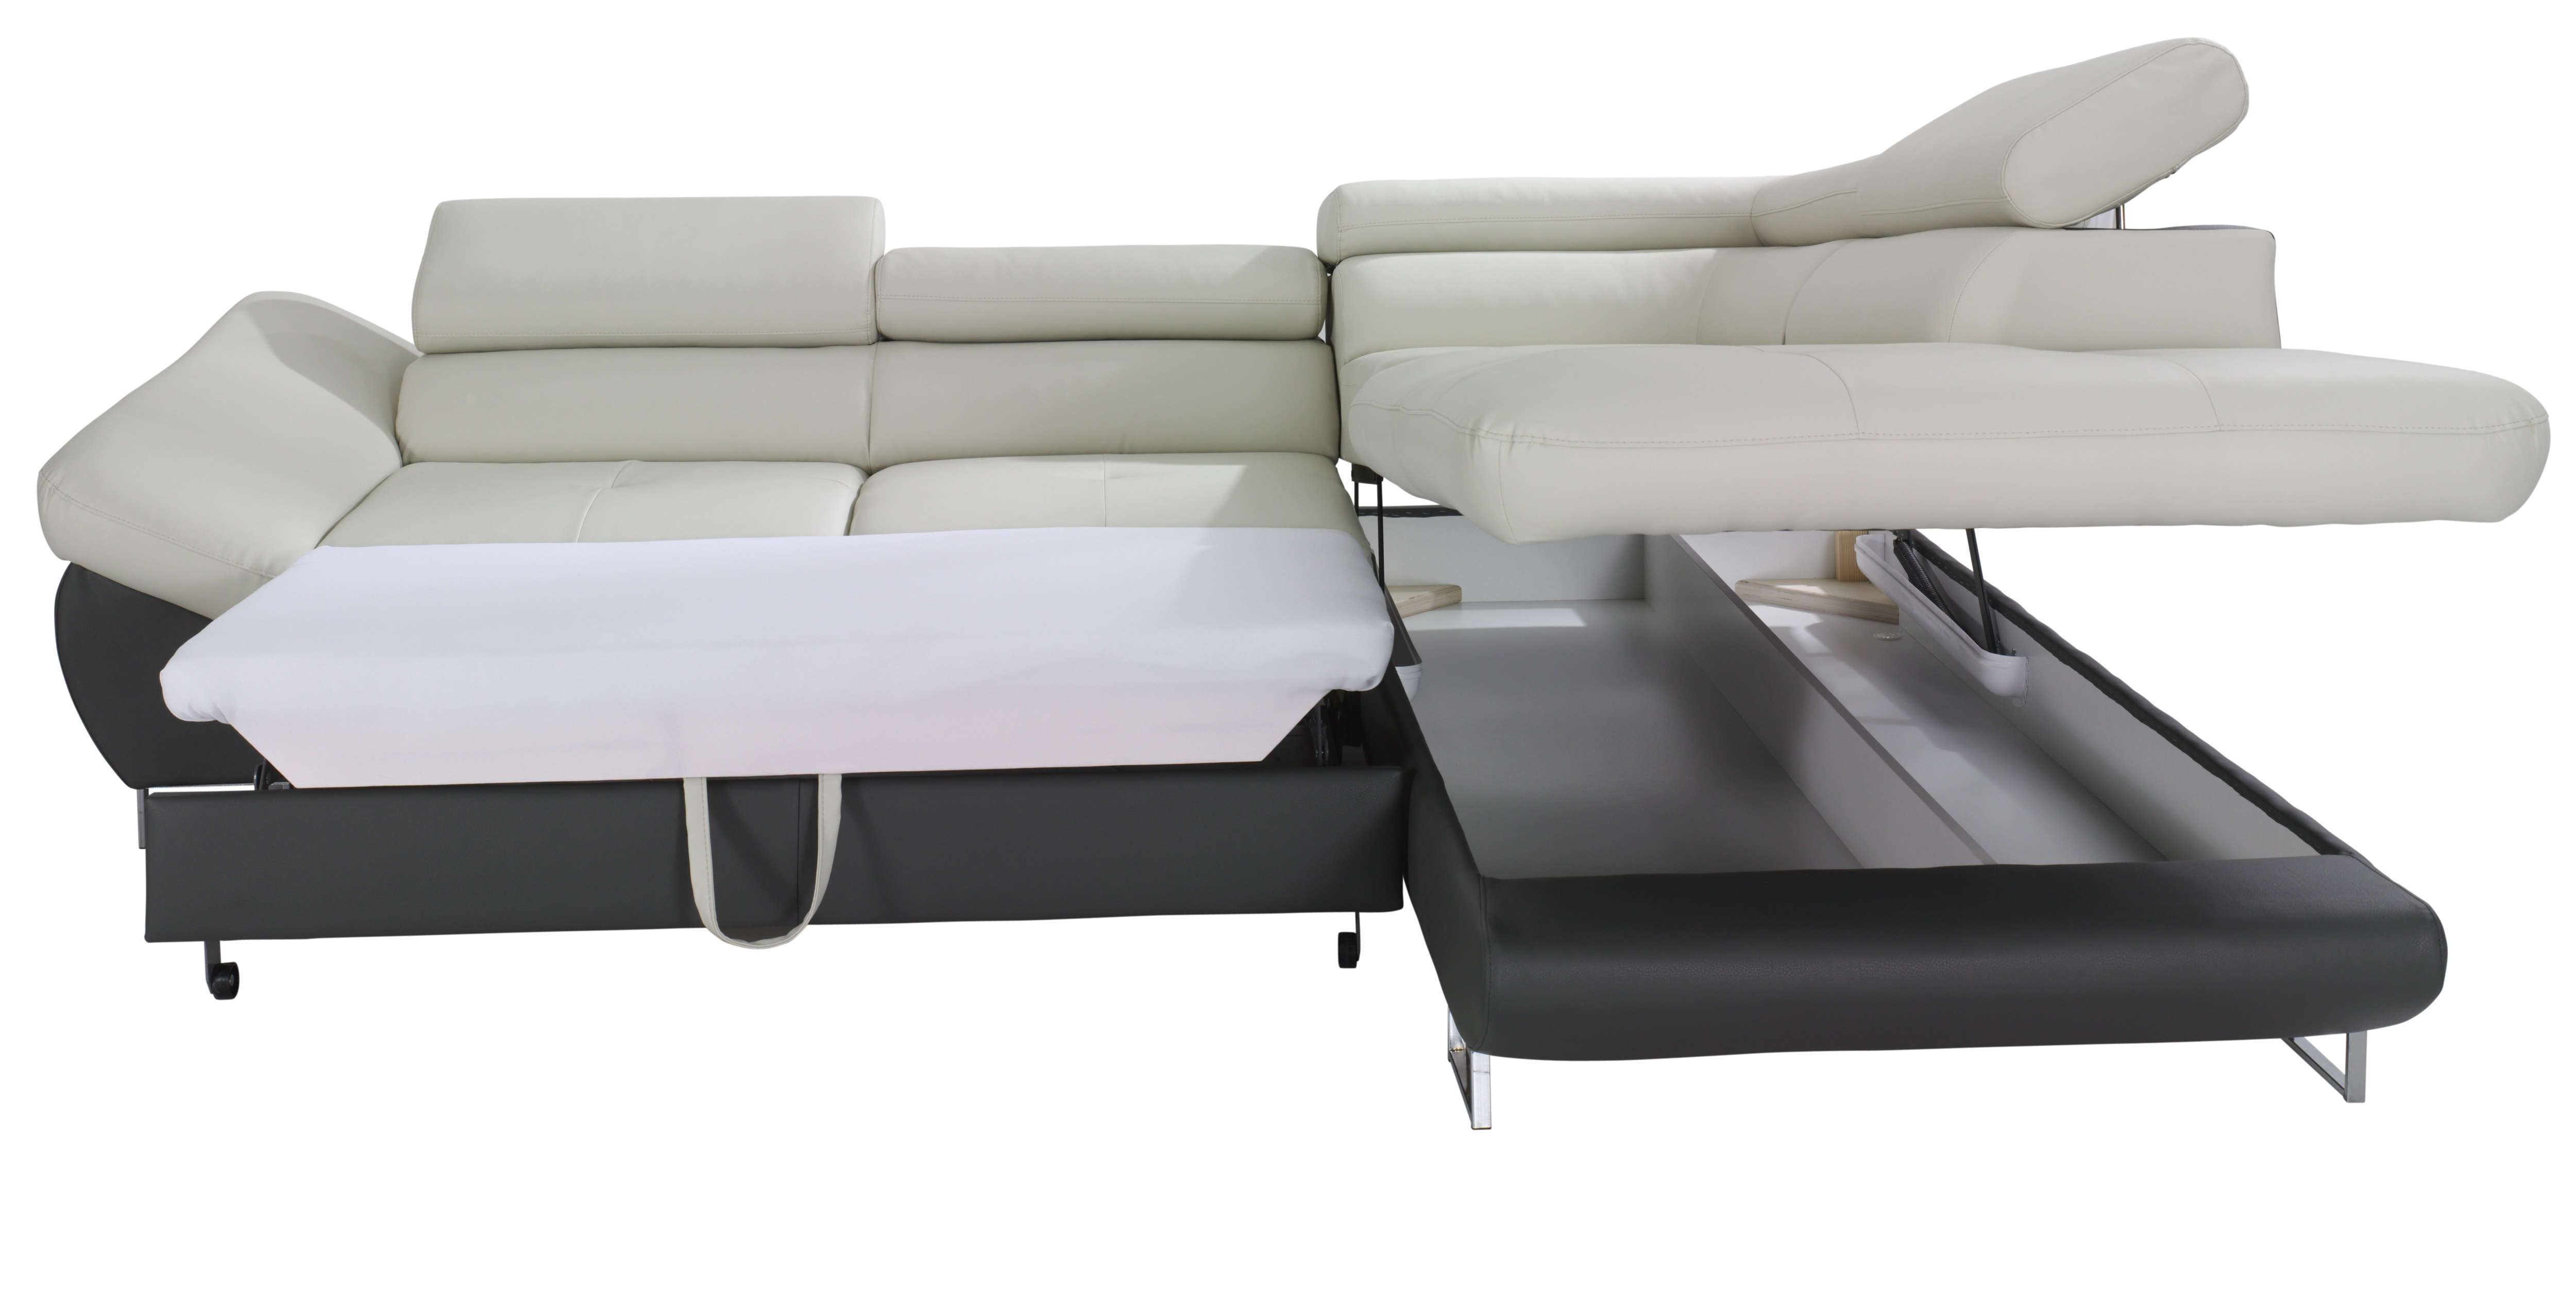 Most Up To Date King Size Sleeper Sofas In Luxury 29 With